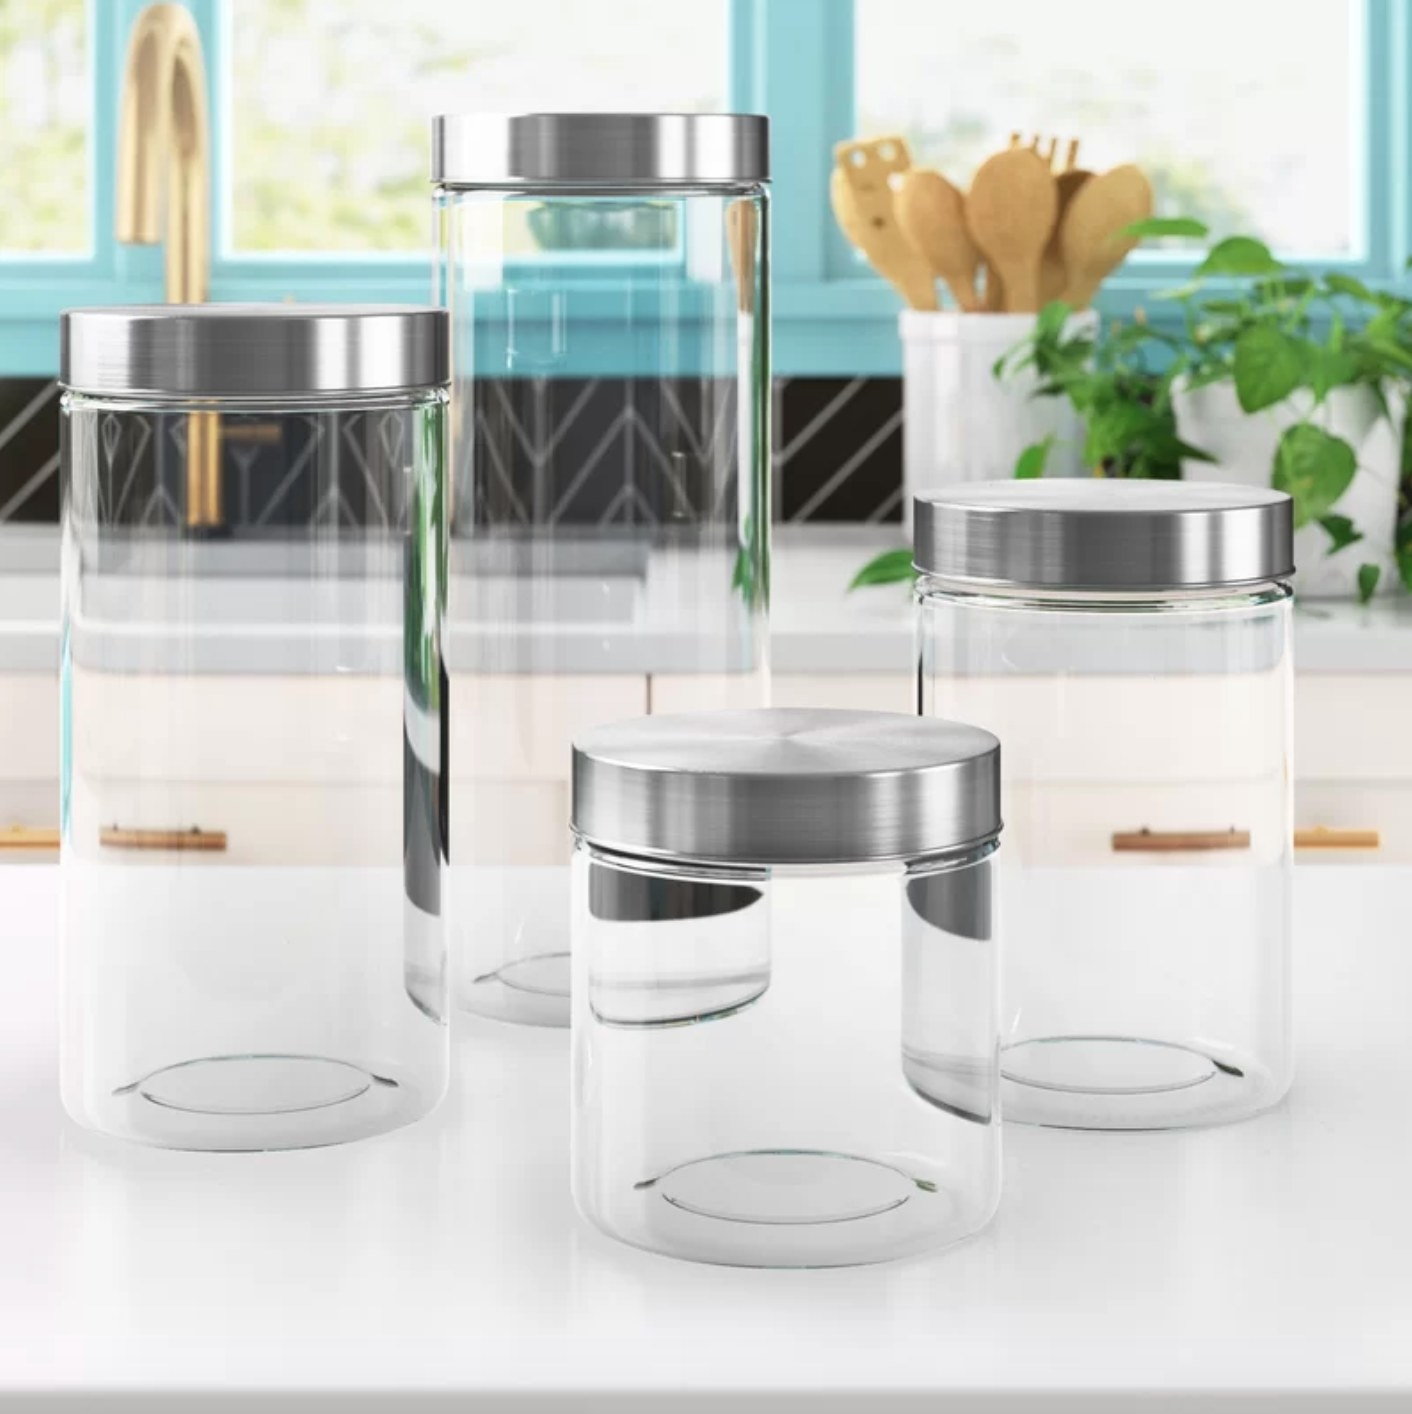 The glass canister set